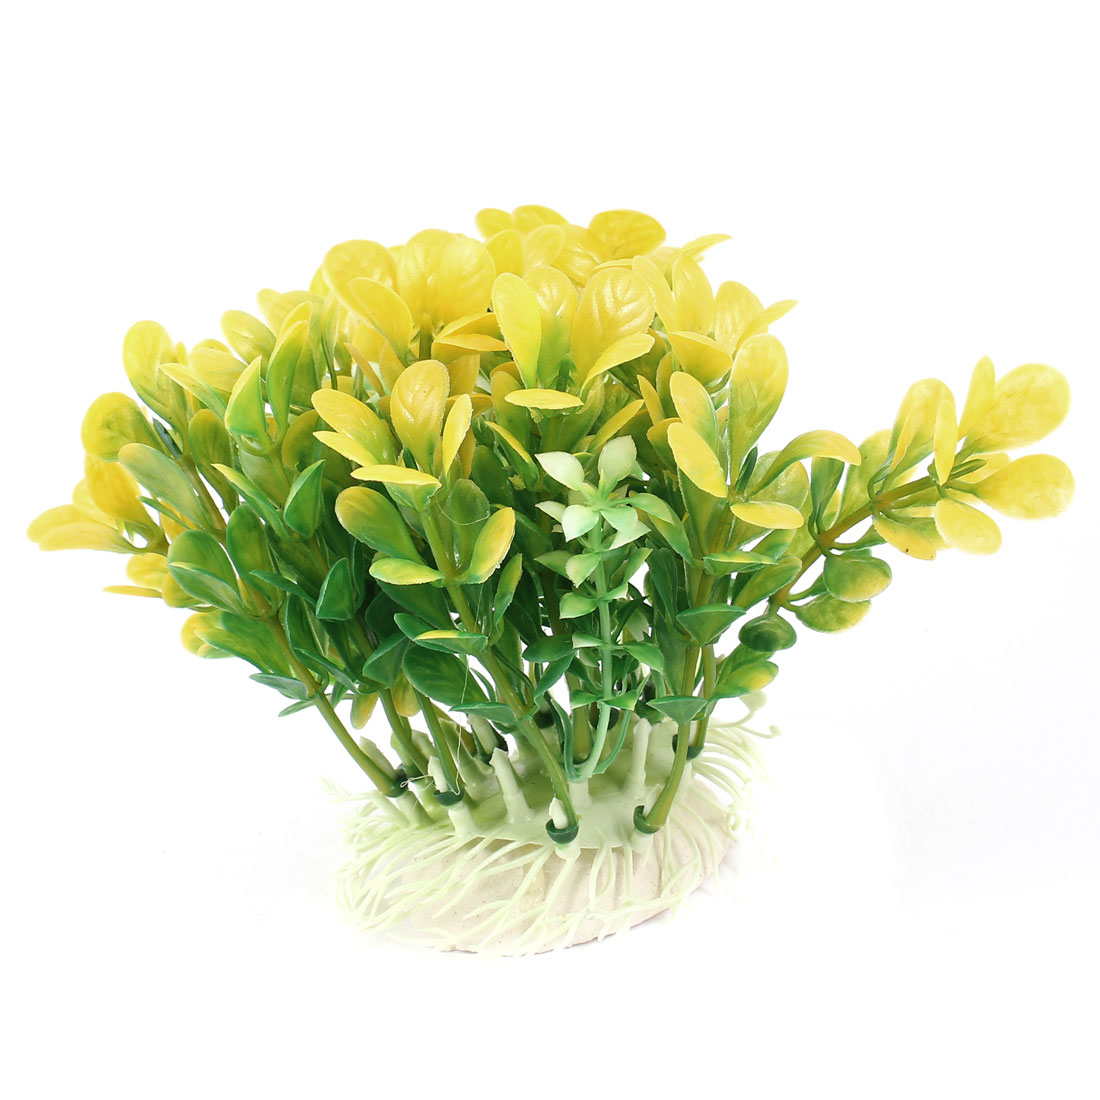 "Aquarium Fish Tank Ornament Landscaping Artificial Emulational Underwater Water Plant Grass Decor Green Yellow 4"" Height"